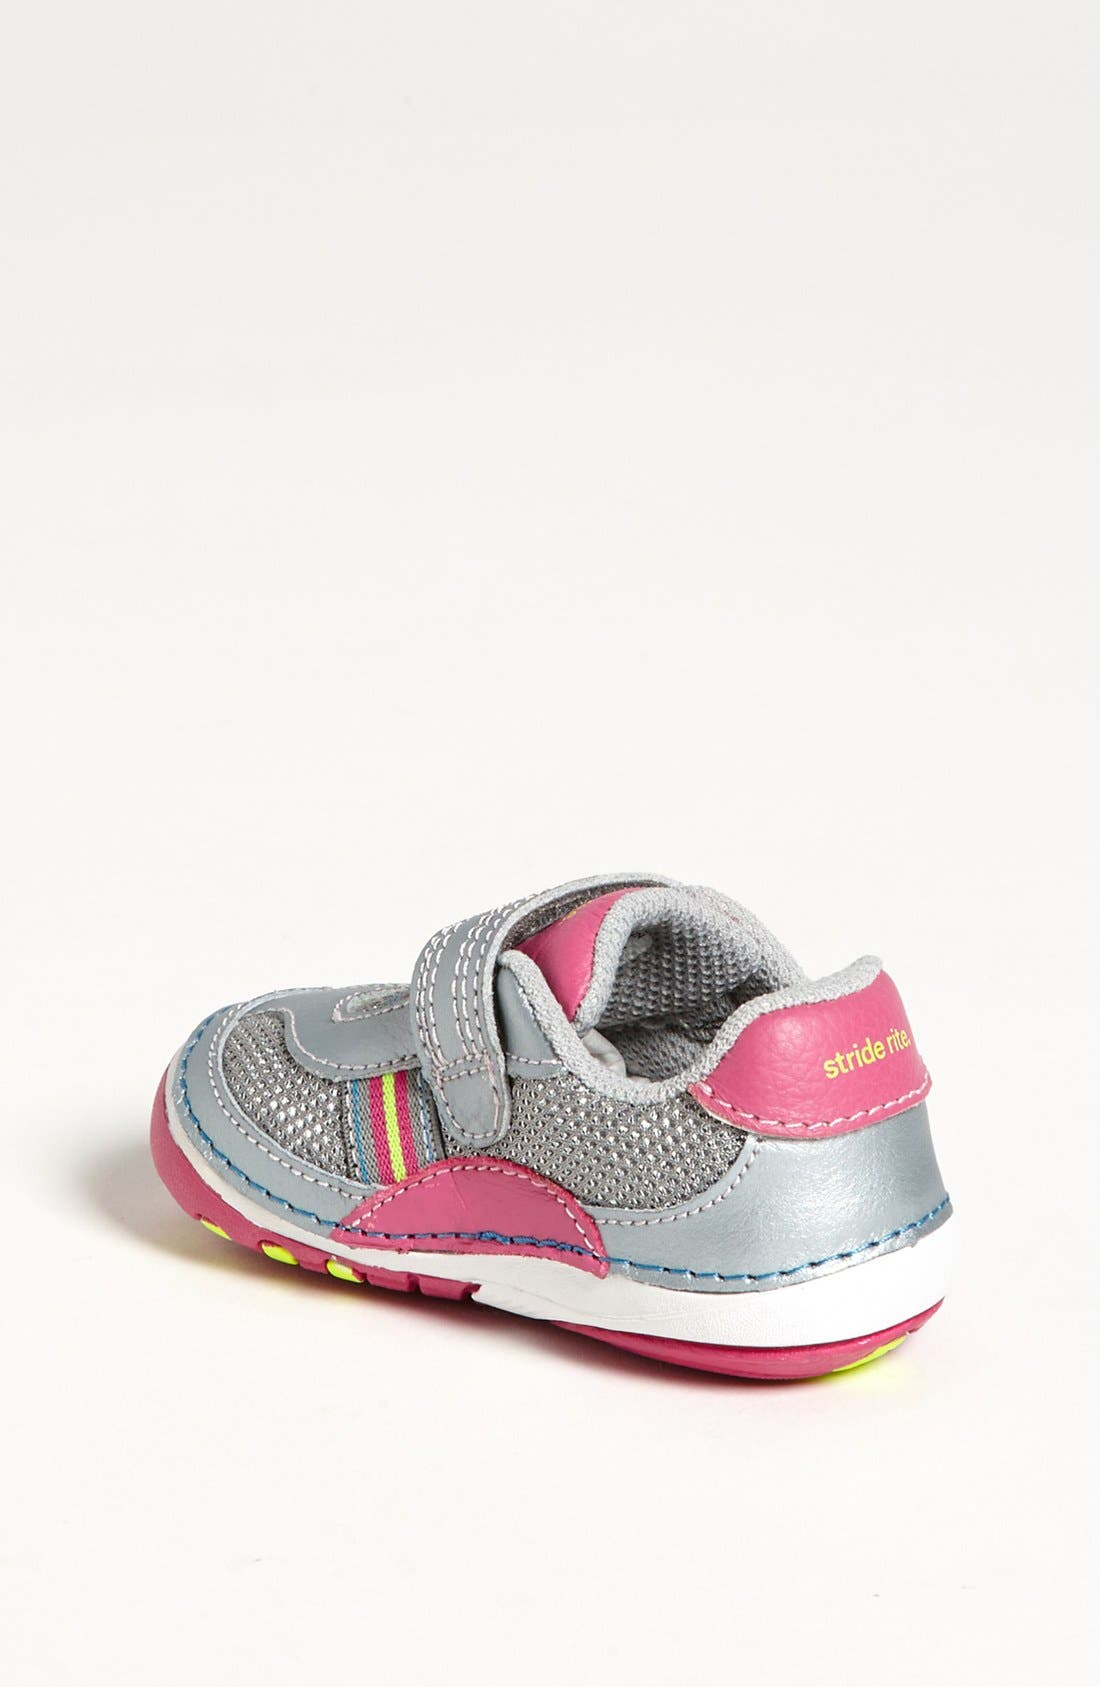 Alternate Image 2  - Stride Rite 'Aldrin' Sneaker (Baby & Walker)